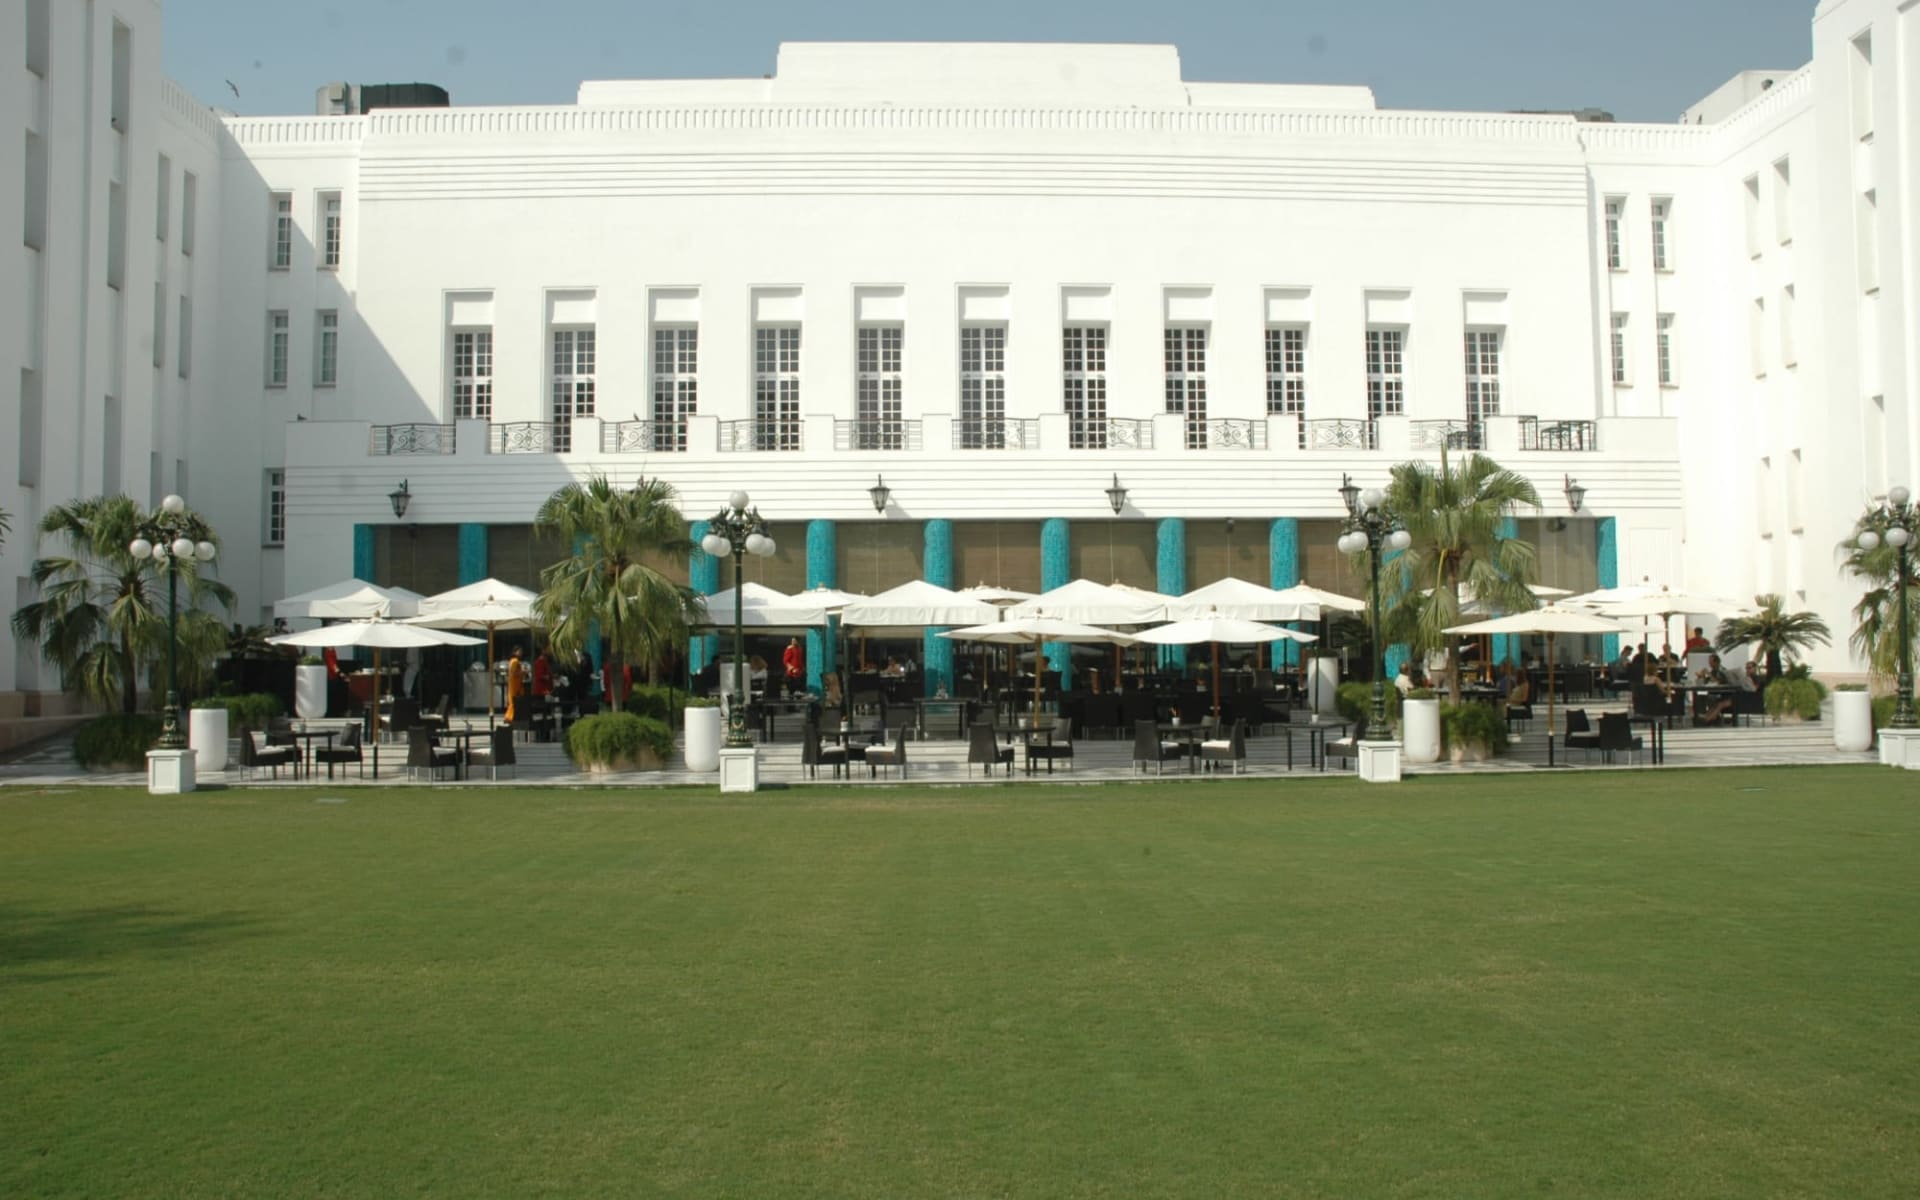 The Imperial in Delhi: 1911 lawns with blue pillars